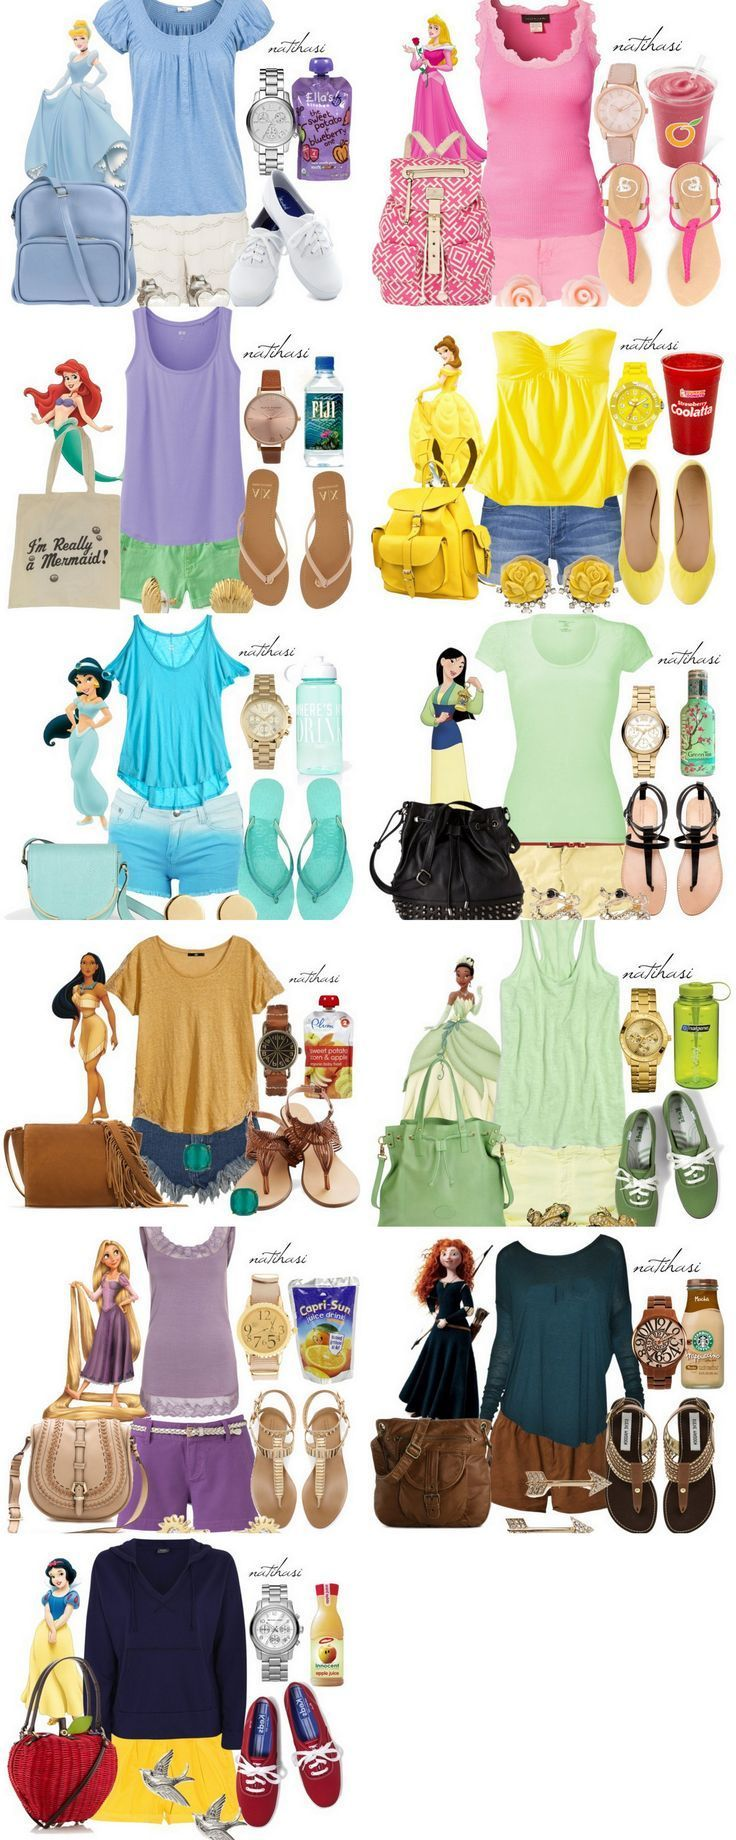 Disney Princess Theme Park Outfit Collection... who wouldn't want to dress like a Disney princess??